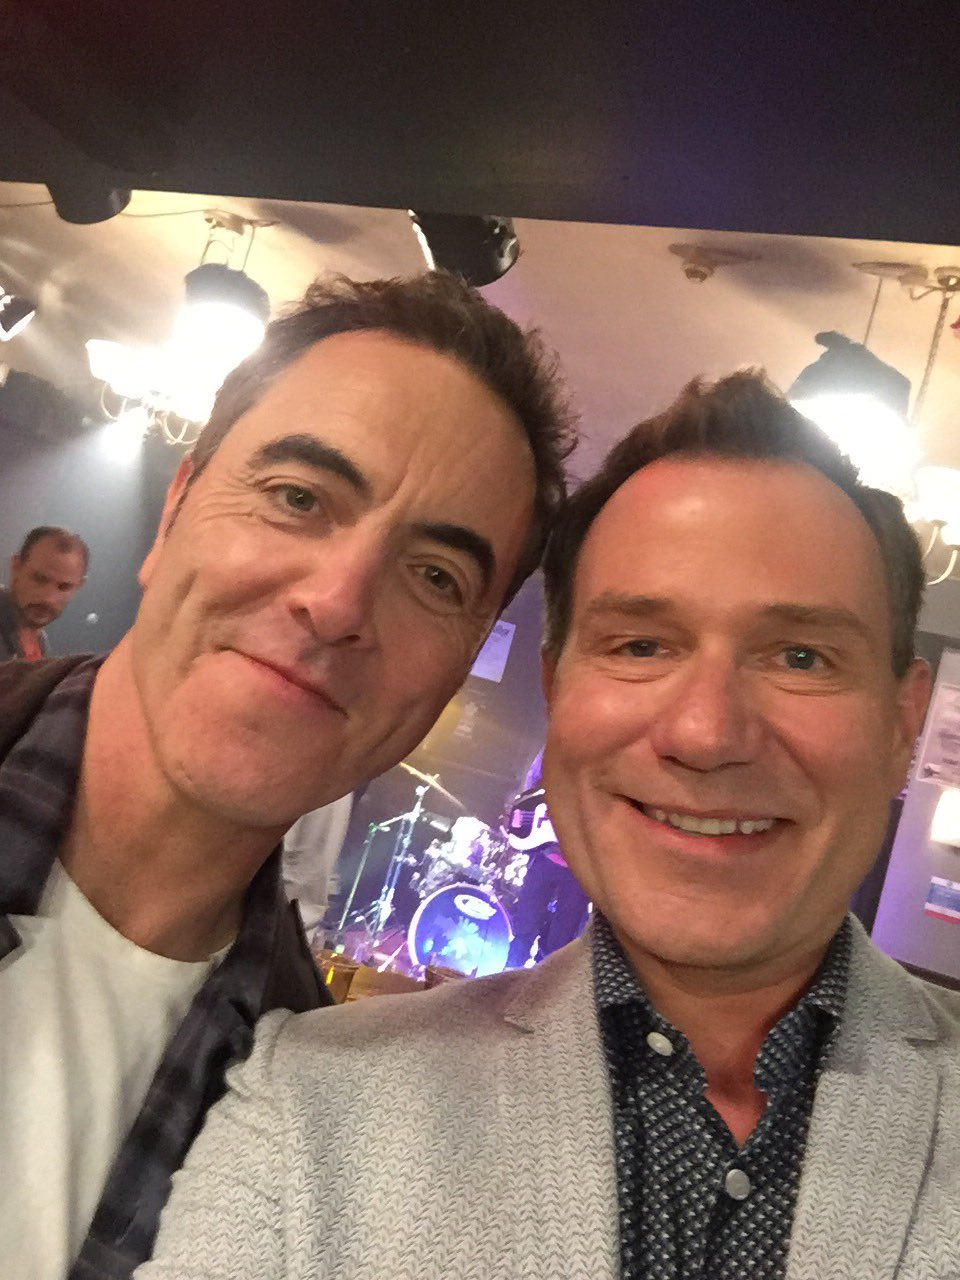 They're back! On set with the @itvcoldfeet cast @GMB at 650 & 750 https://t.co/6fnVTa9aBA